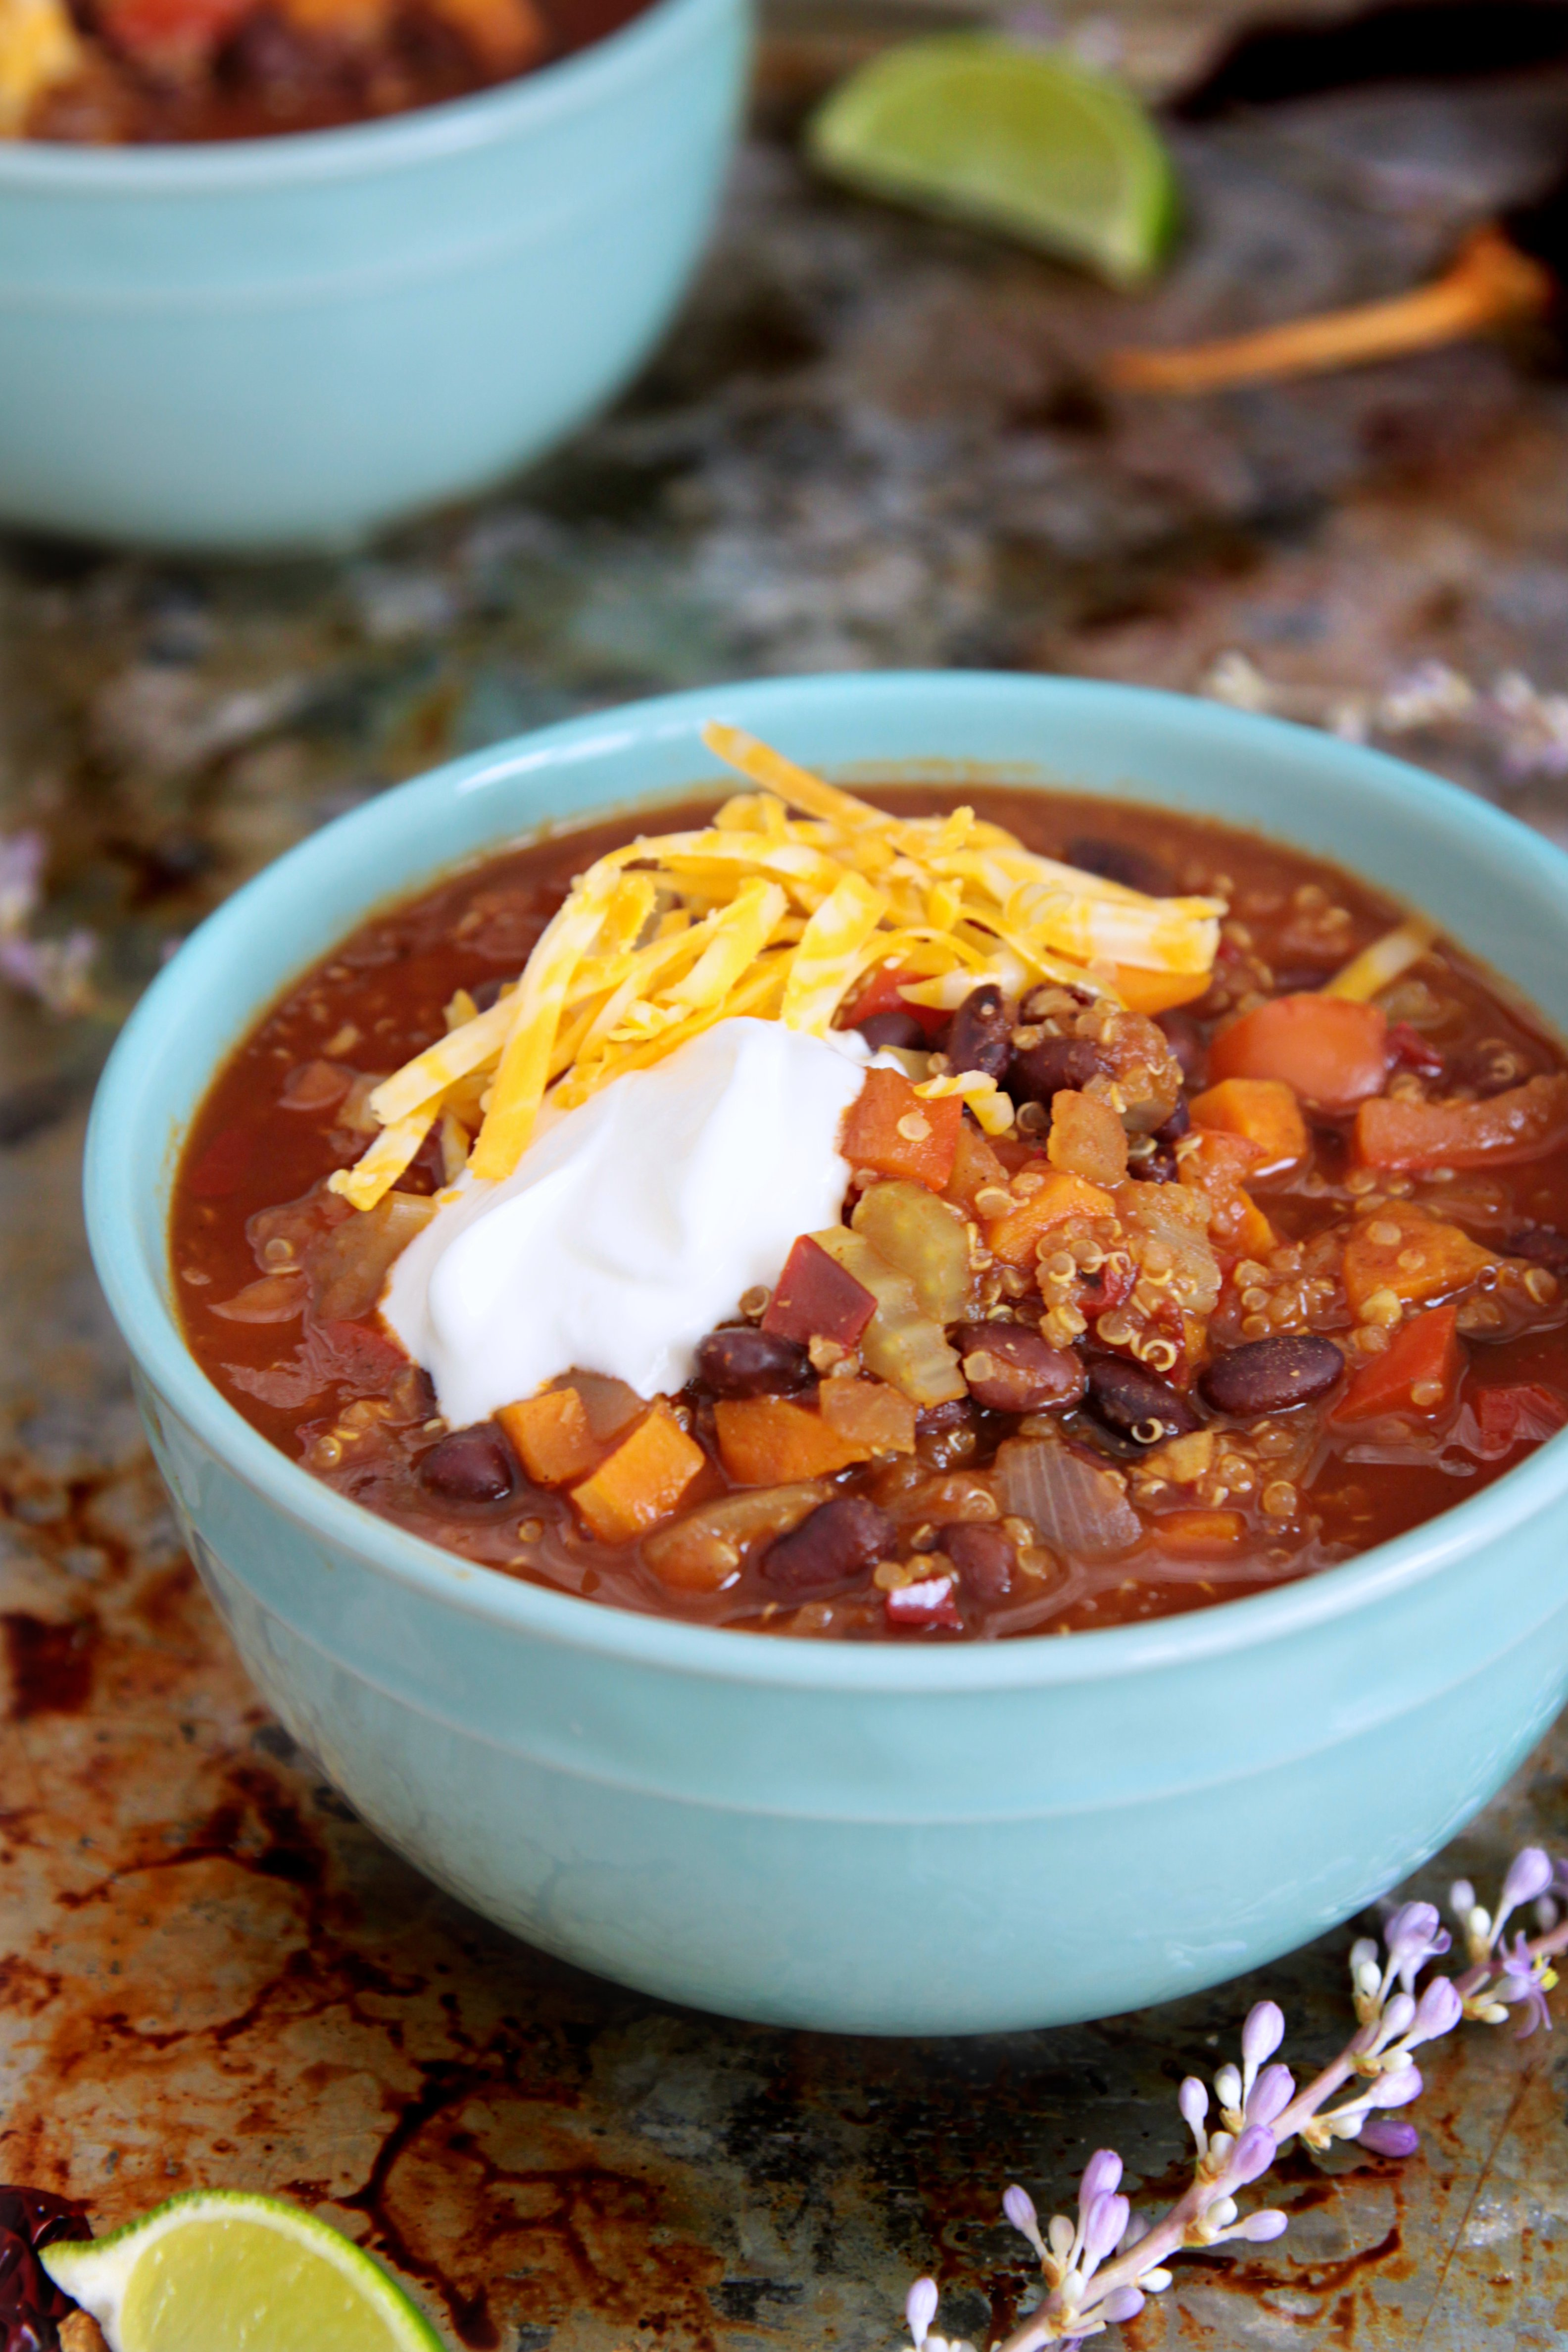 This is the BEST Quinoa + Black Bean Chili you will ever have! Everyone loves it, not just those who like vegetarian recipes. Try it today! The Cheerful Kitchen